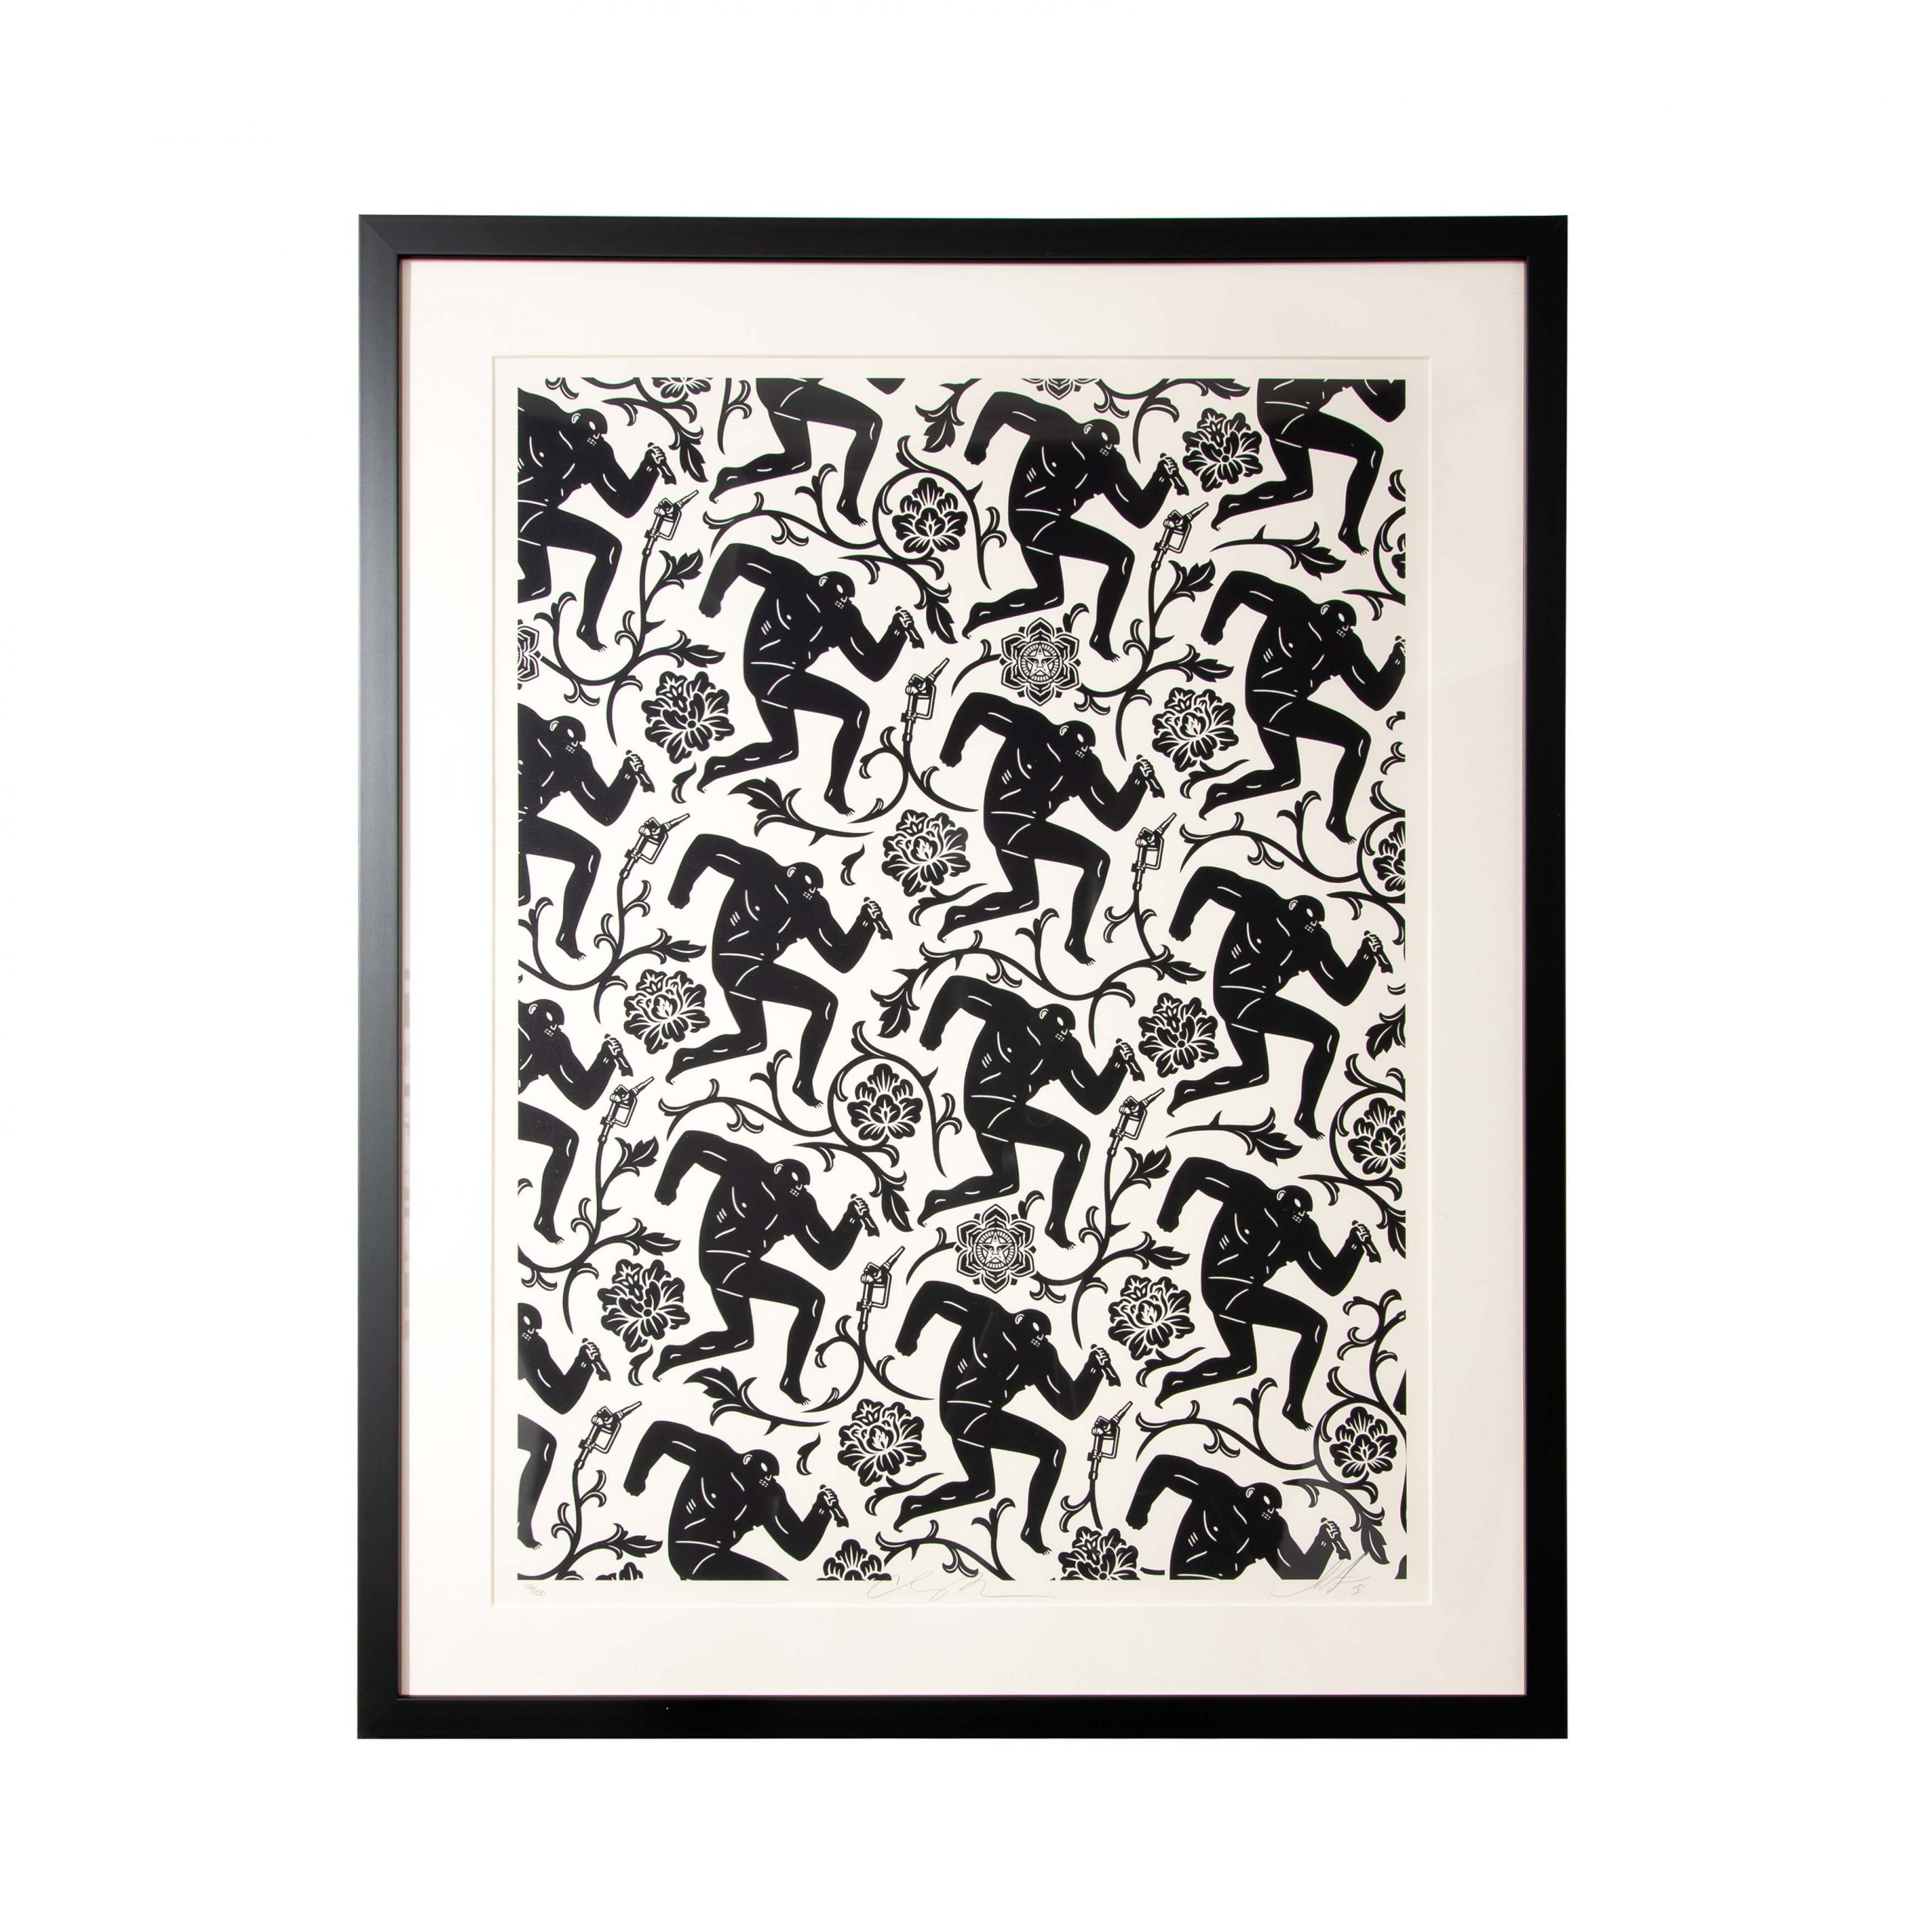 Patterns of Corruption by Shepard Fairey & Cleon Peterson